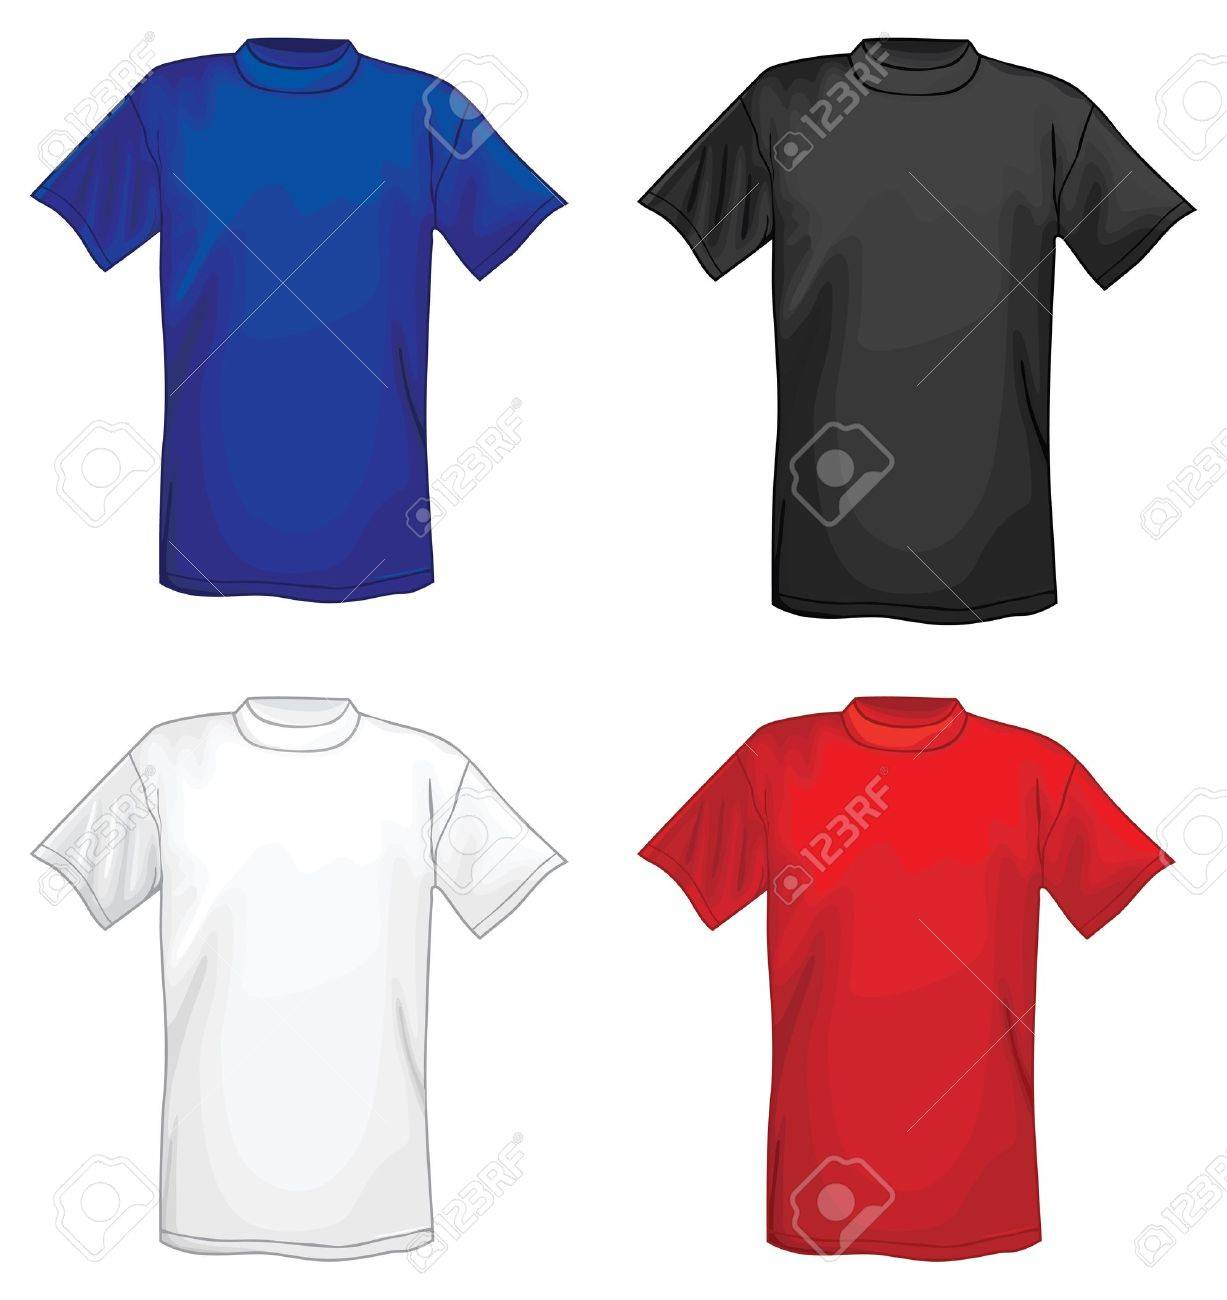 b7fa7c9d Multicolored Vector T-shirt Design Templates Royalty Free Cliparts ...